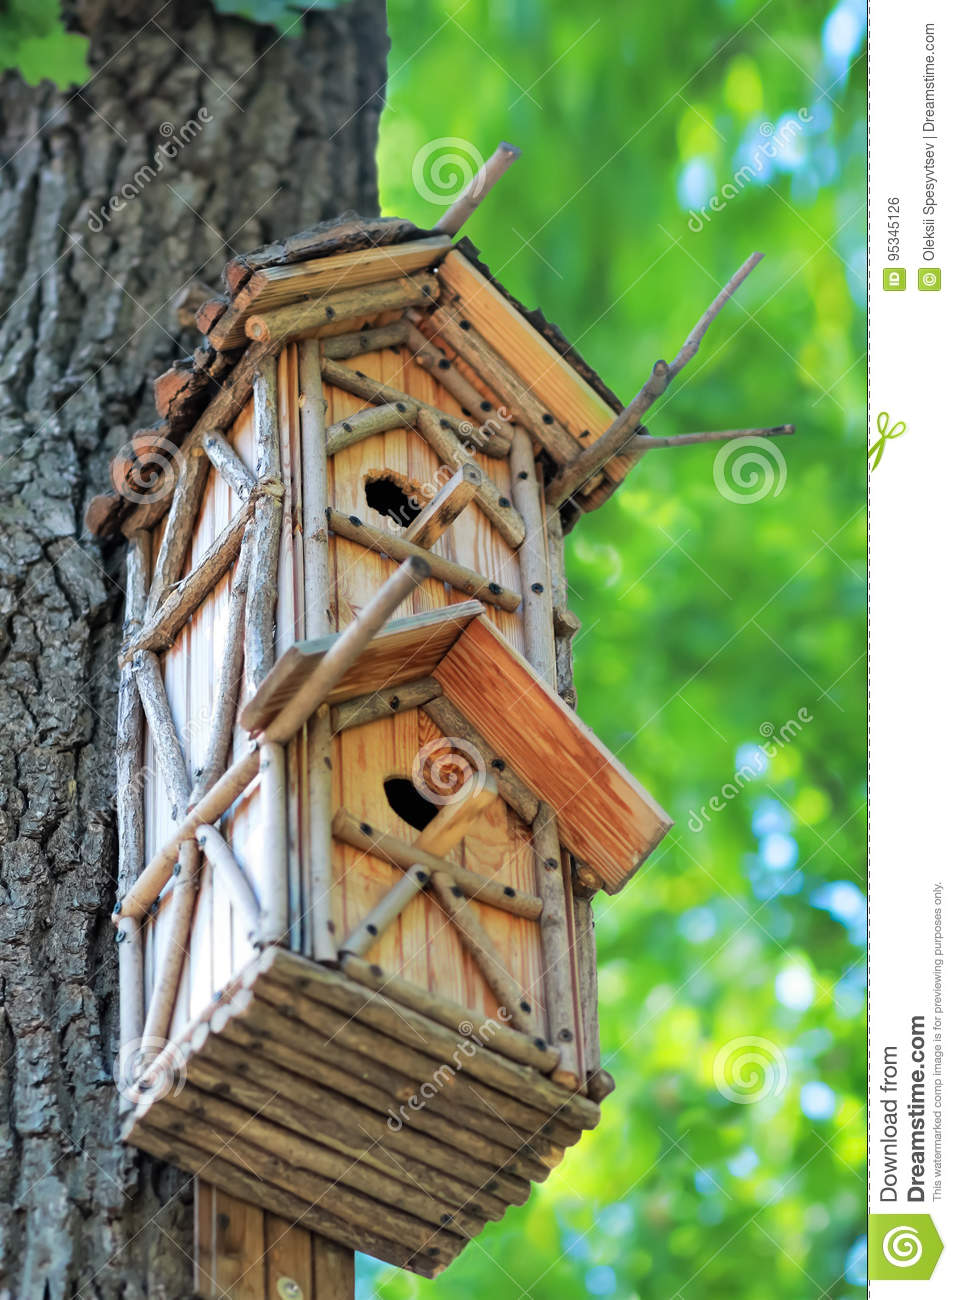 Fabulous Creative Hand Made Wooden Bird House Hanging On The Tree In Download Free Architecture Designs Scobabritishbridgeorg